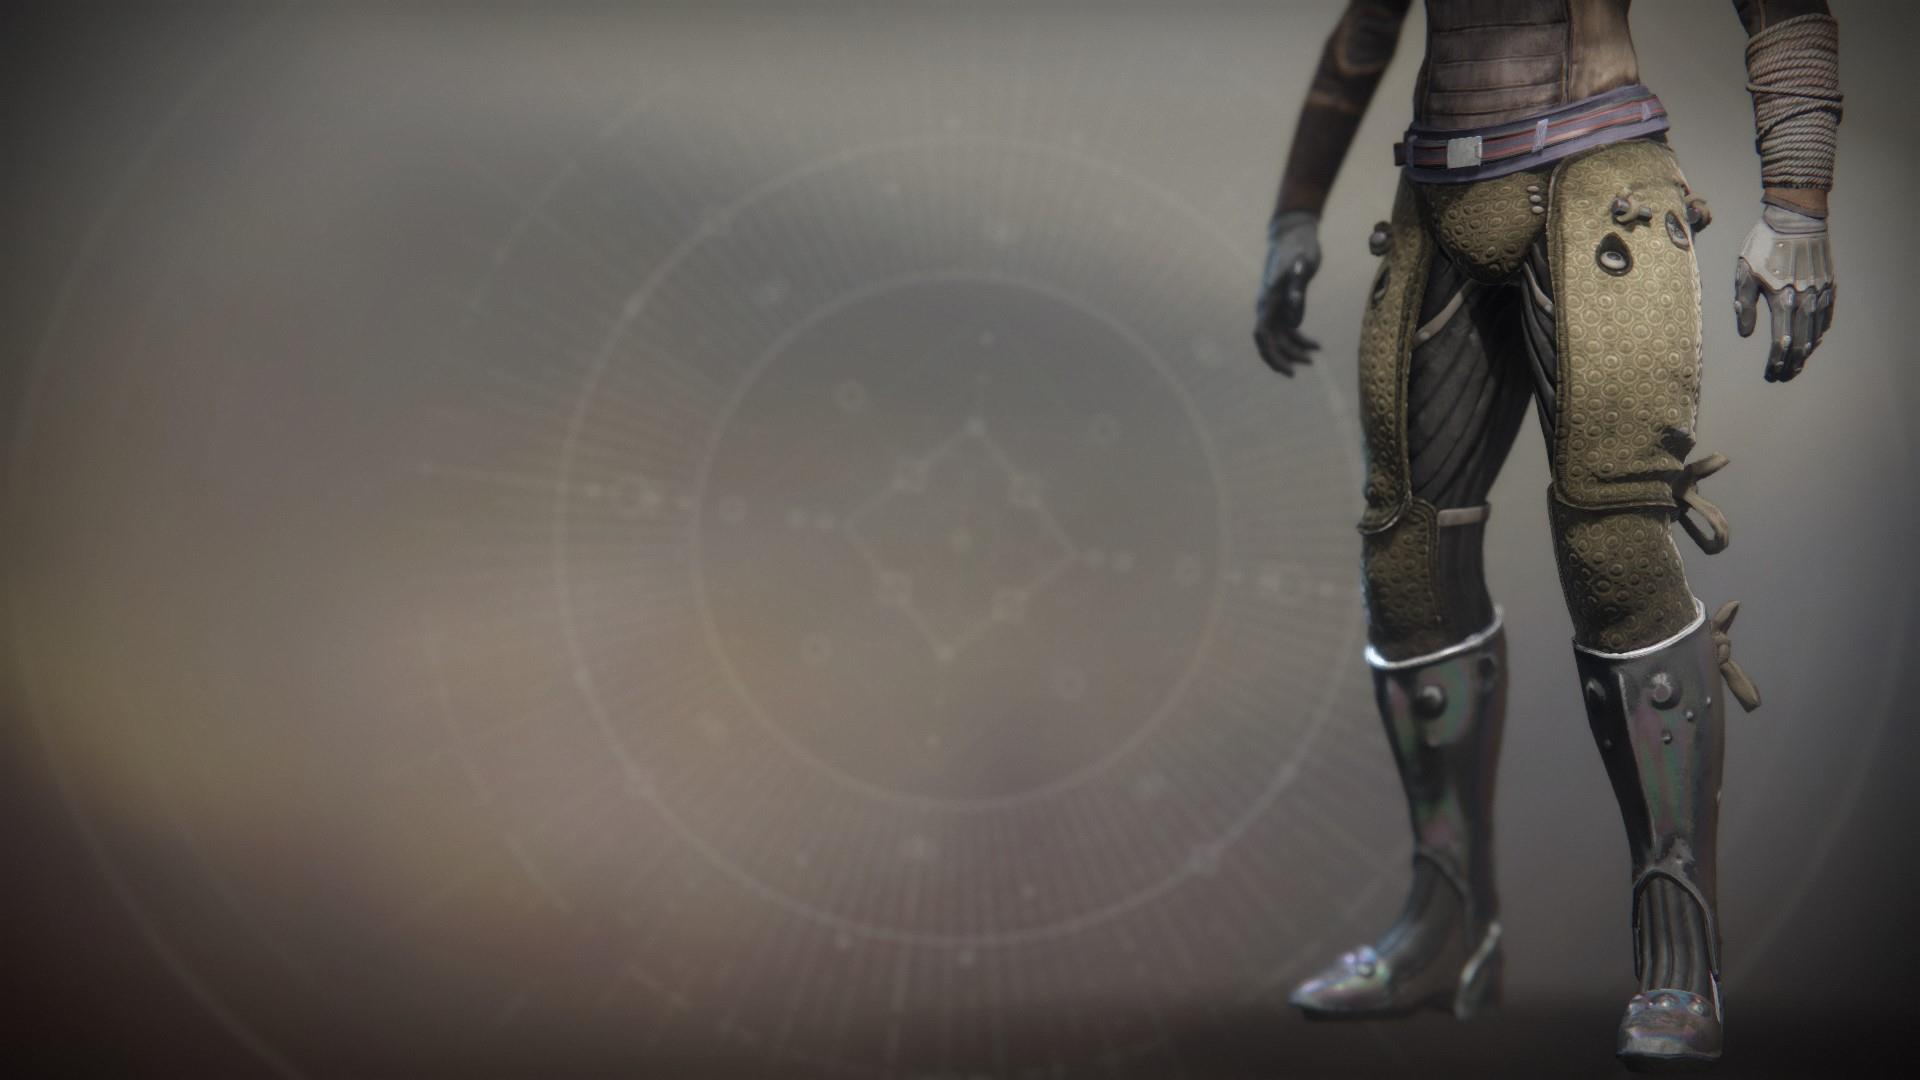 An in-game render of the Boots of Feltroc.